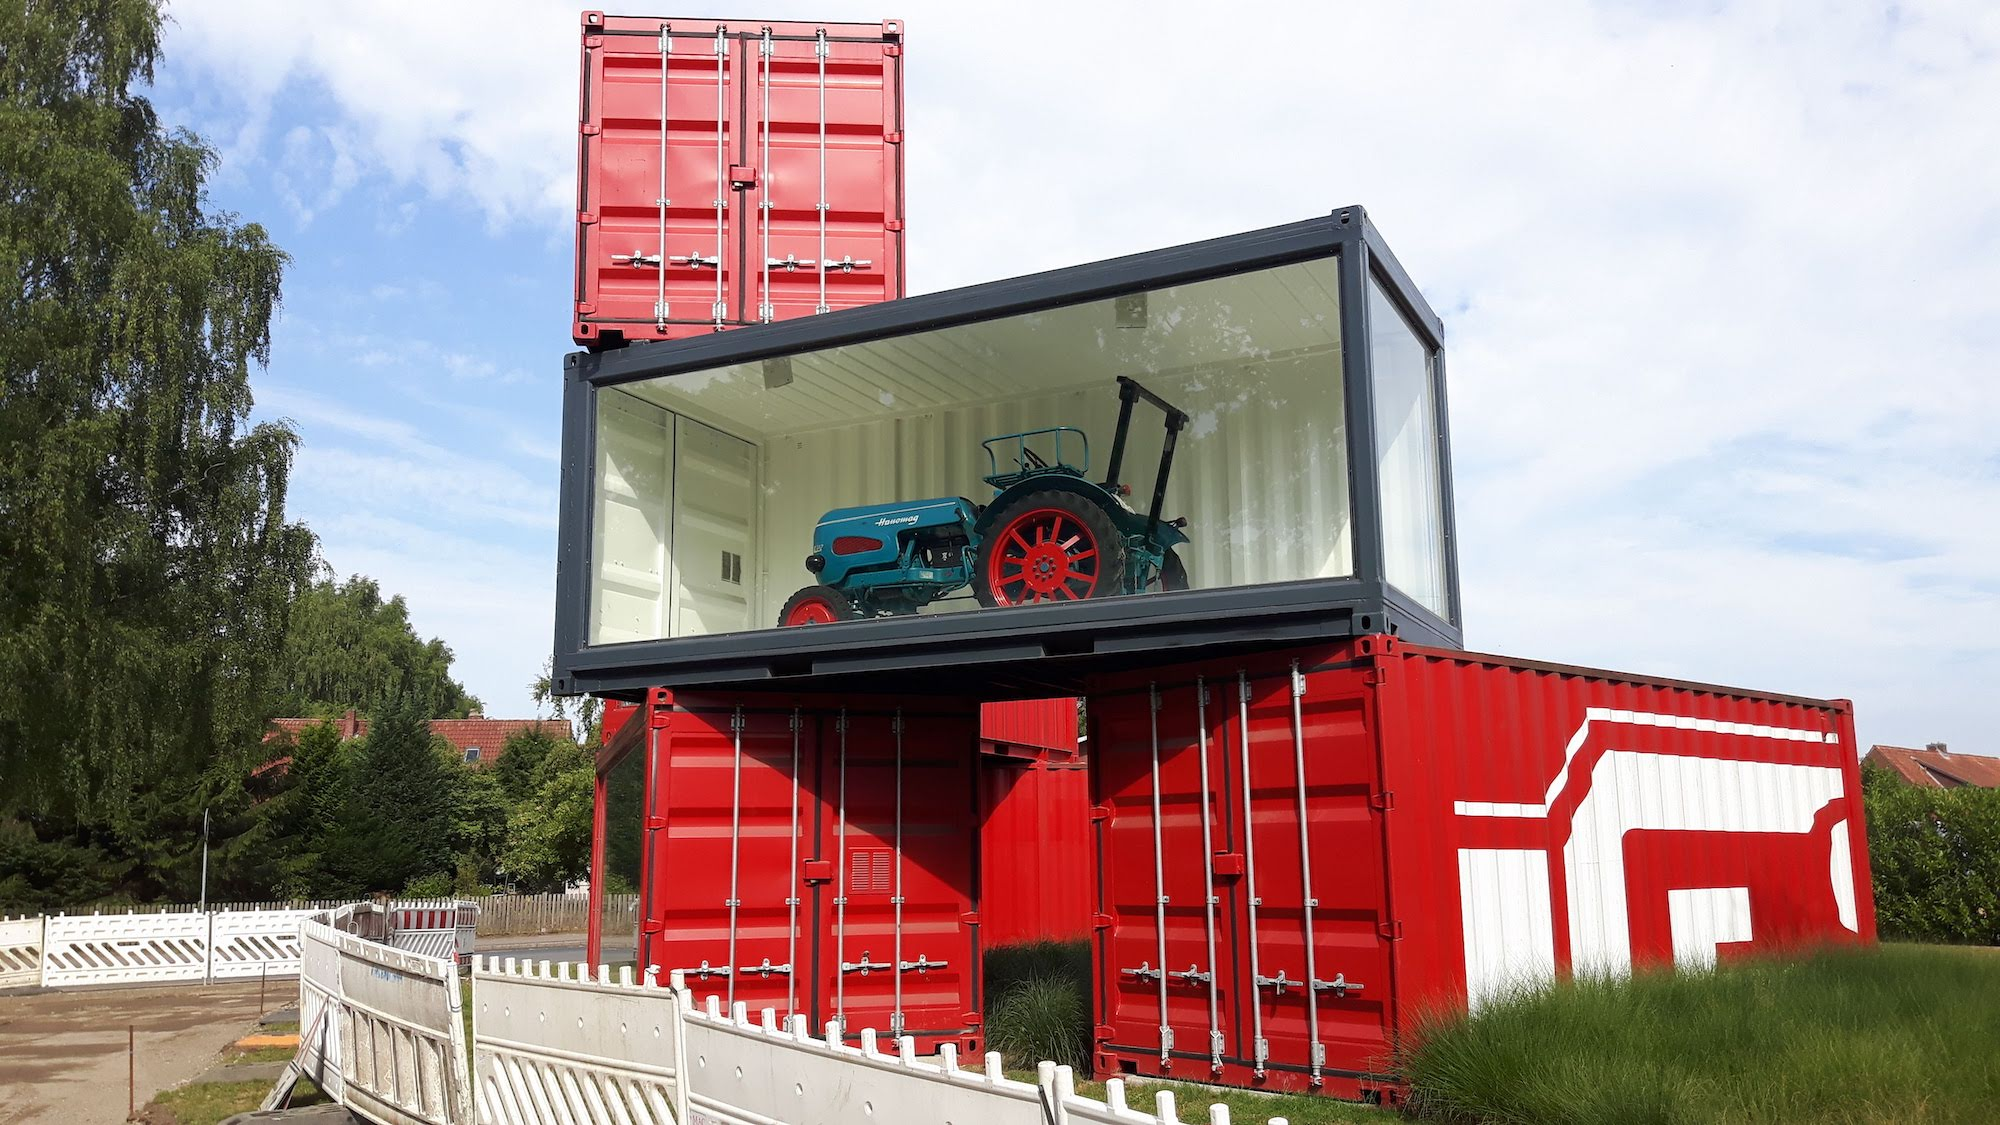 A tractor on Germany